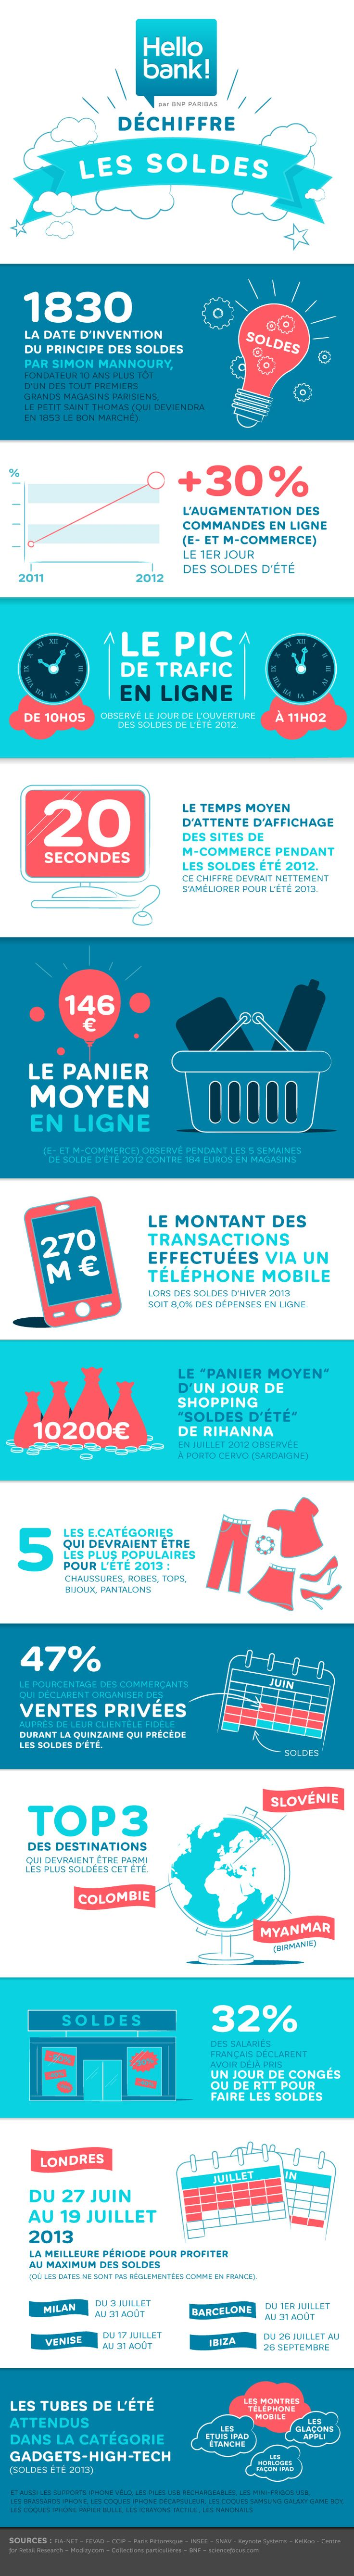 16 best promo info promo codes for quartsoft services images on hello bank dchiffre les soldes infographie fandeluxe Choice Image